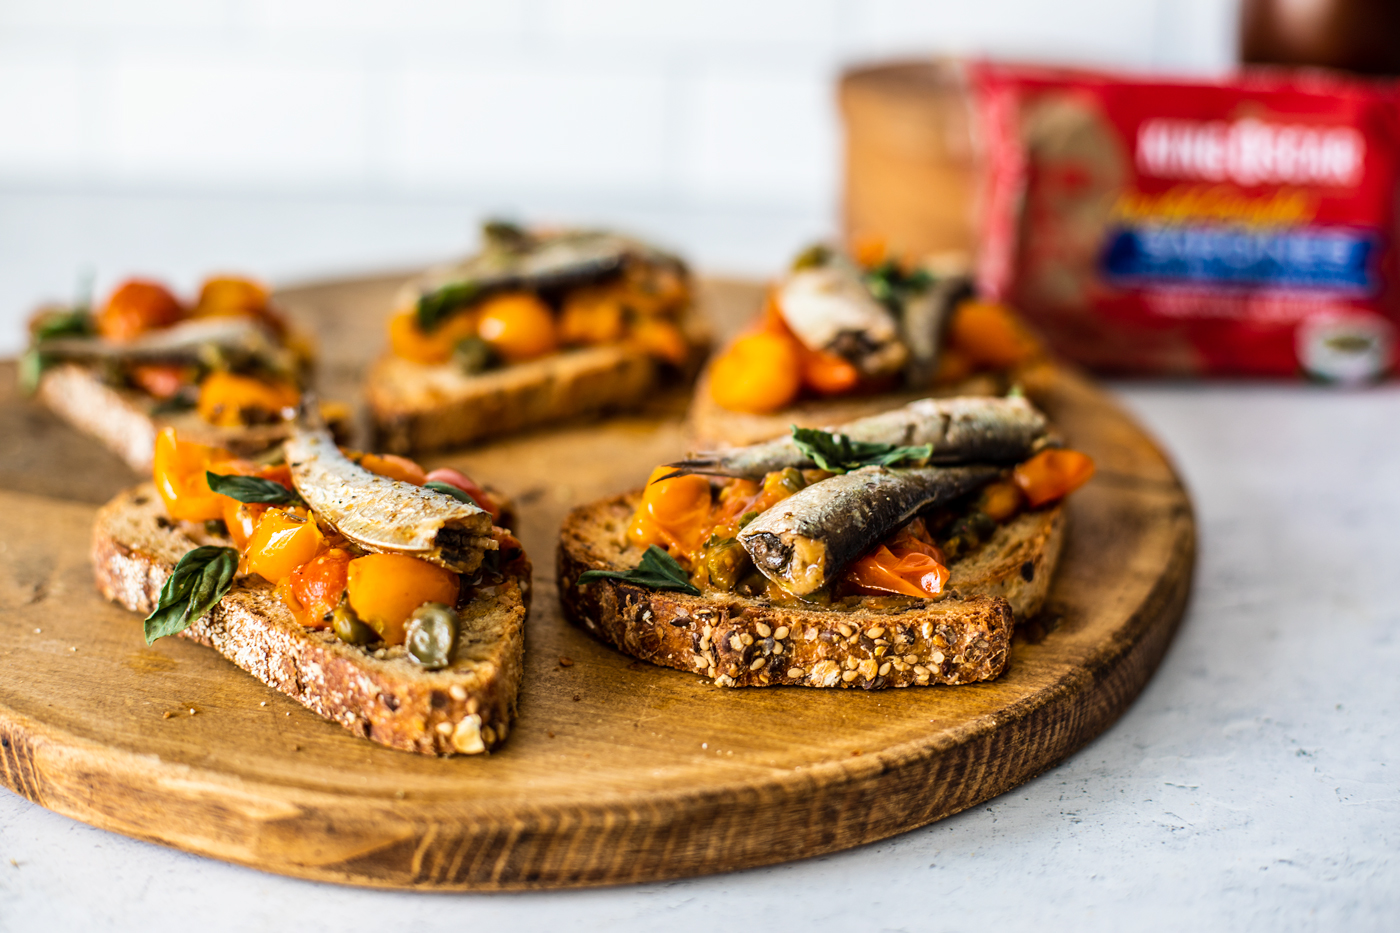 Close up of tomato confit on toast with sardines, laid out on wooden serving board.